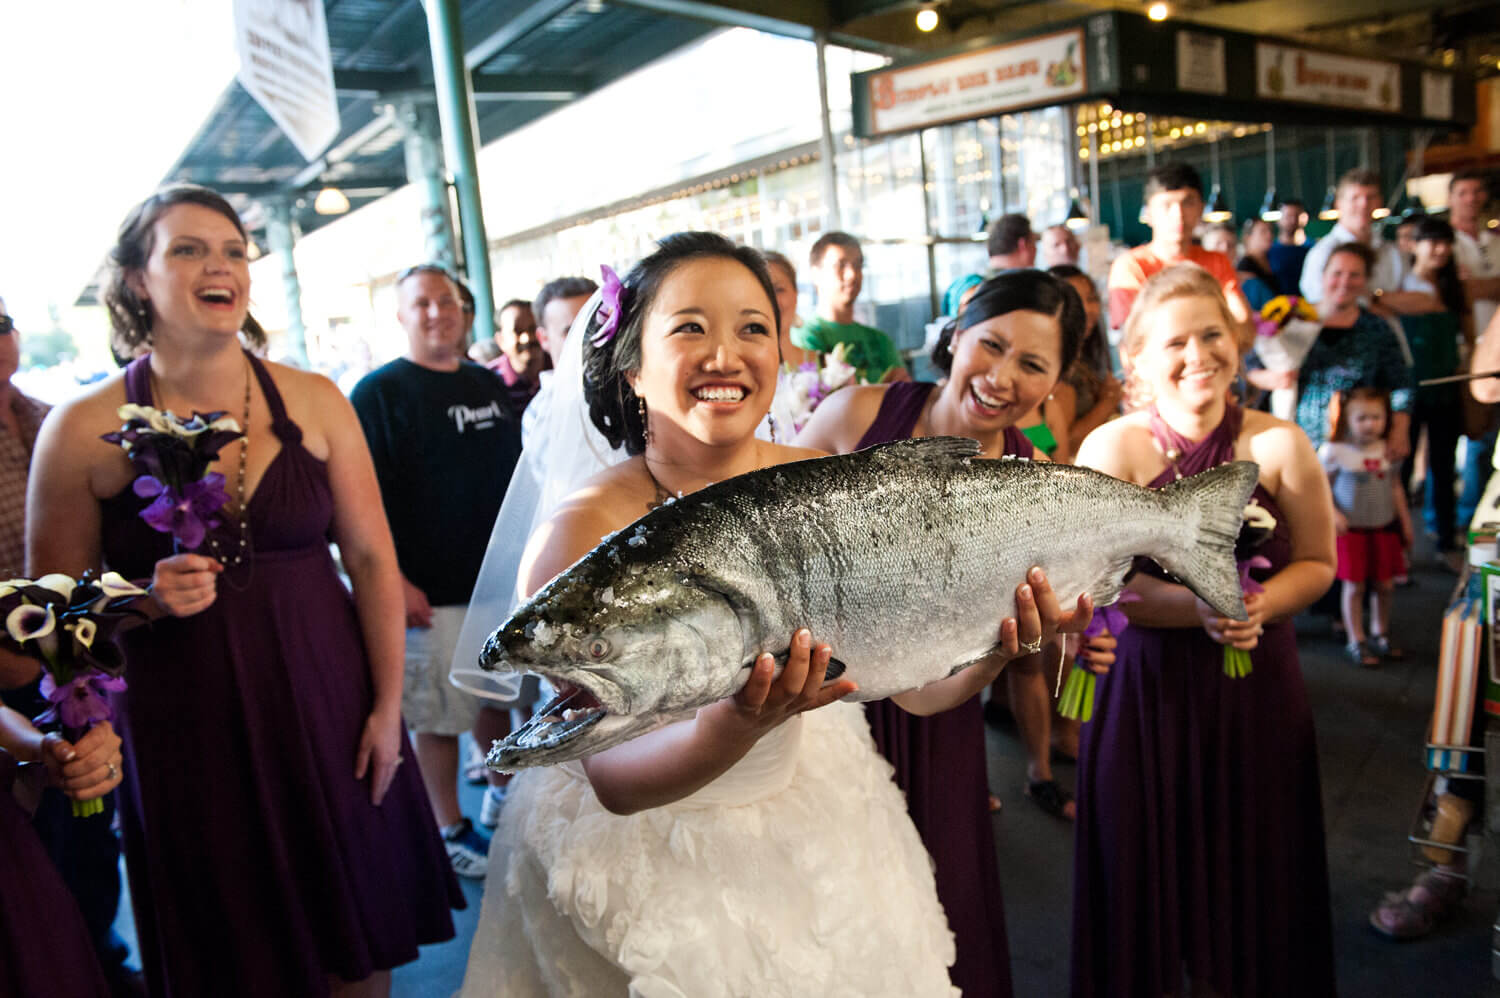 bride-catches-fish-pike-place-market.jpg